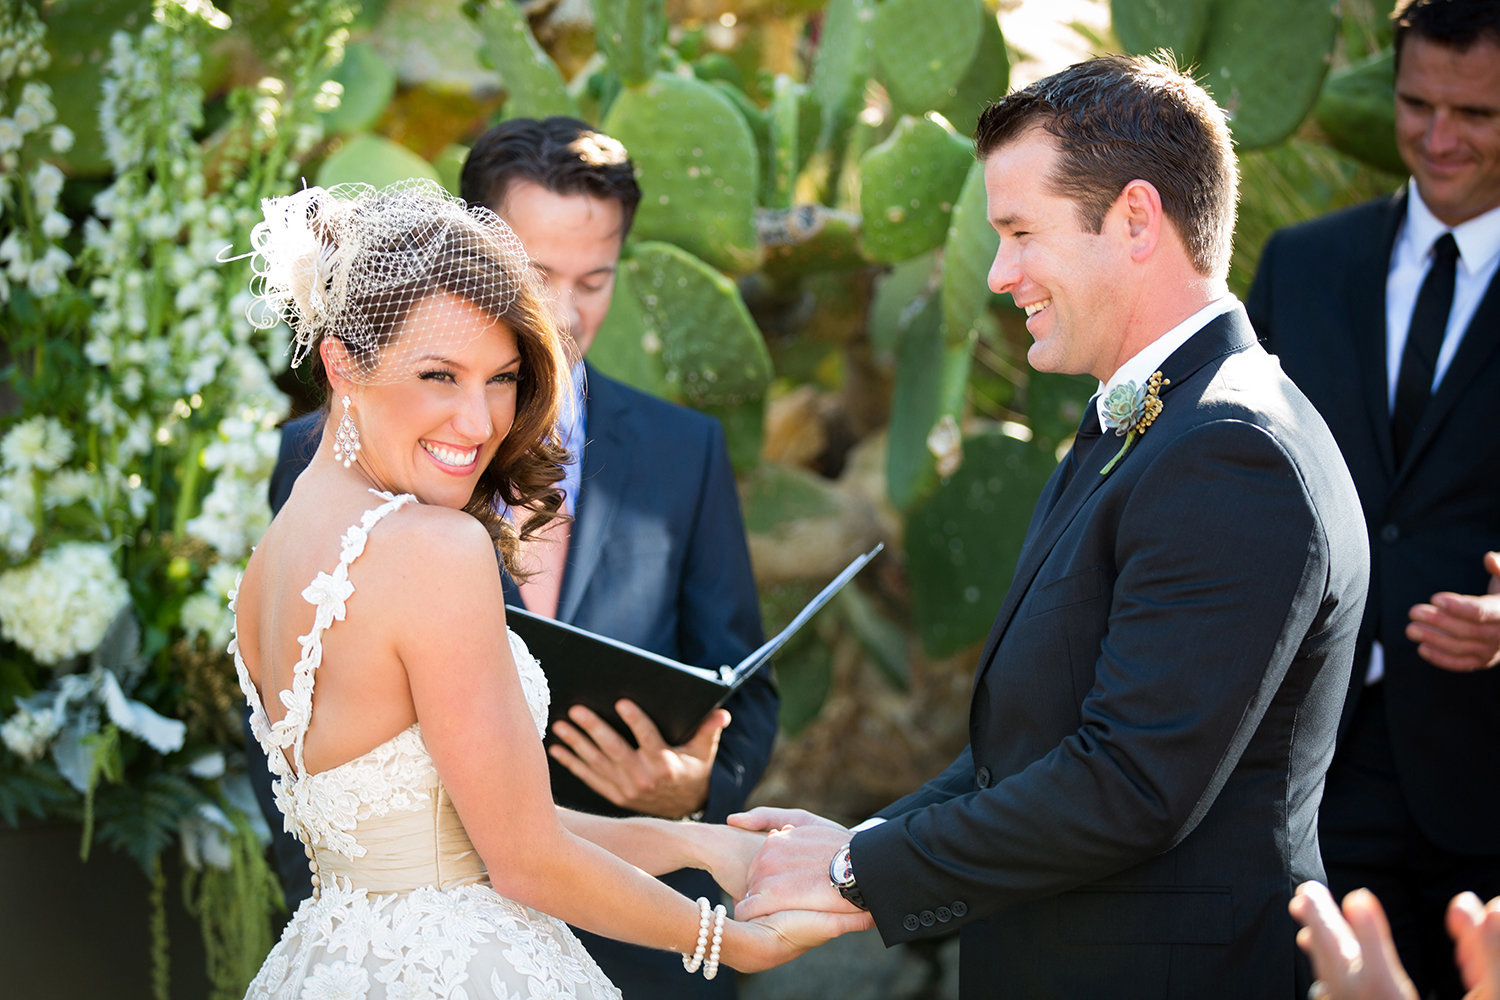 Palm Springs wedding photos beautiful bride at ceremony